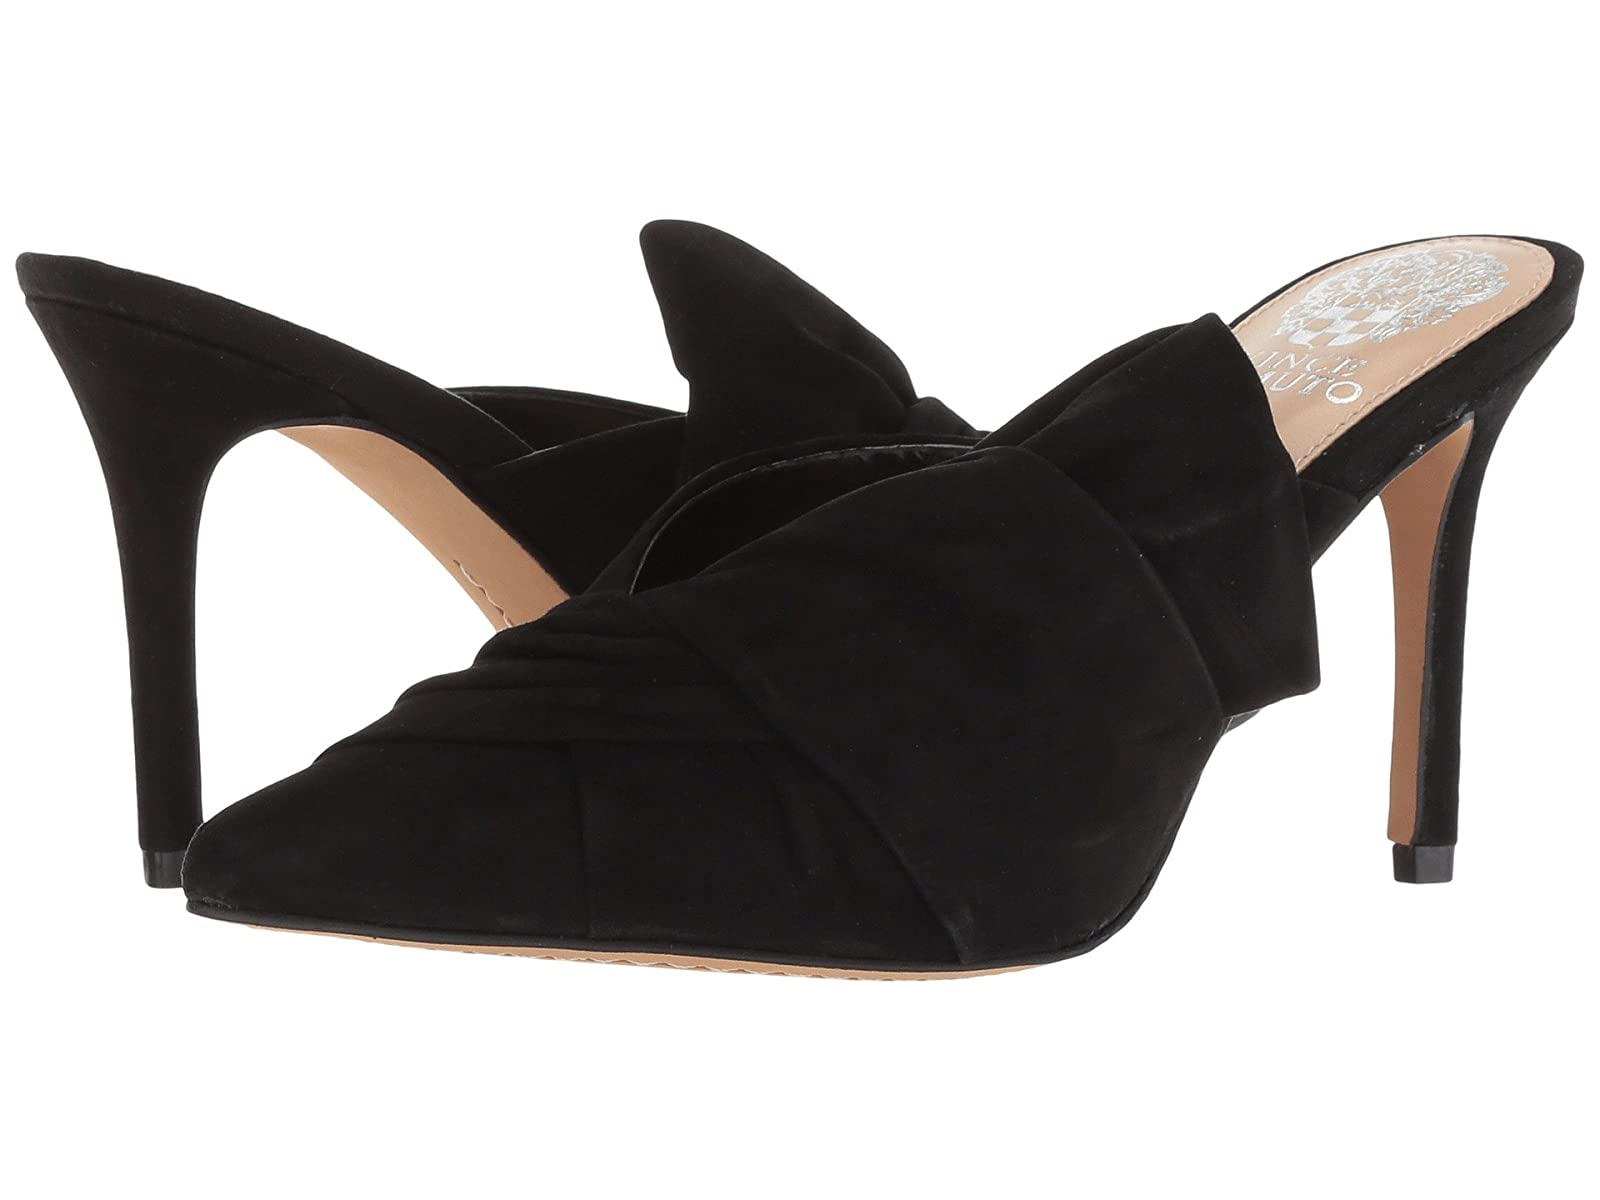 Vince Camuto AmilladaCheap and distinctive eye-catching shoes